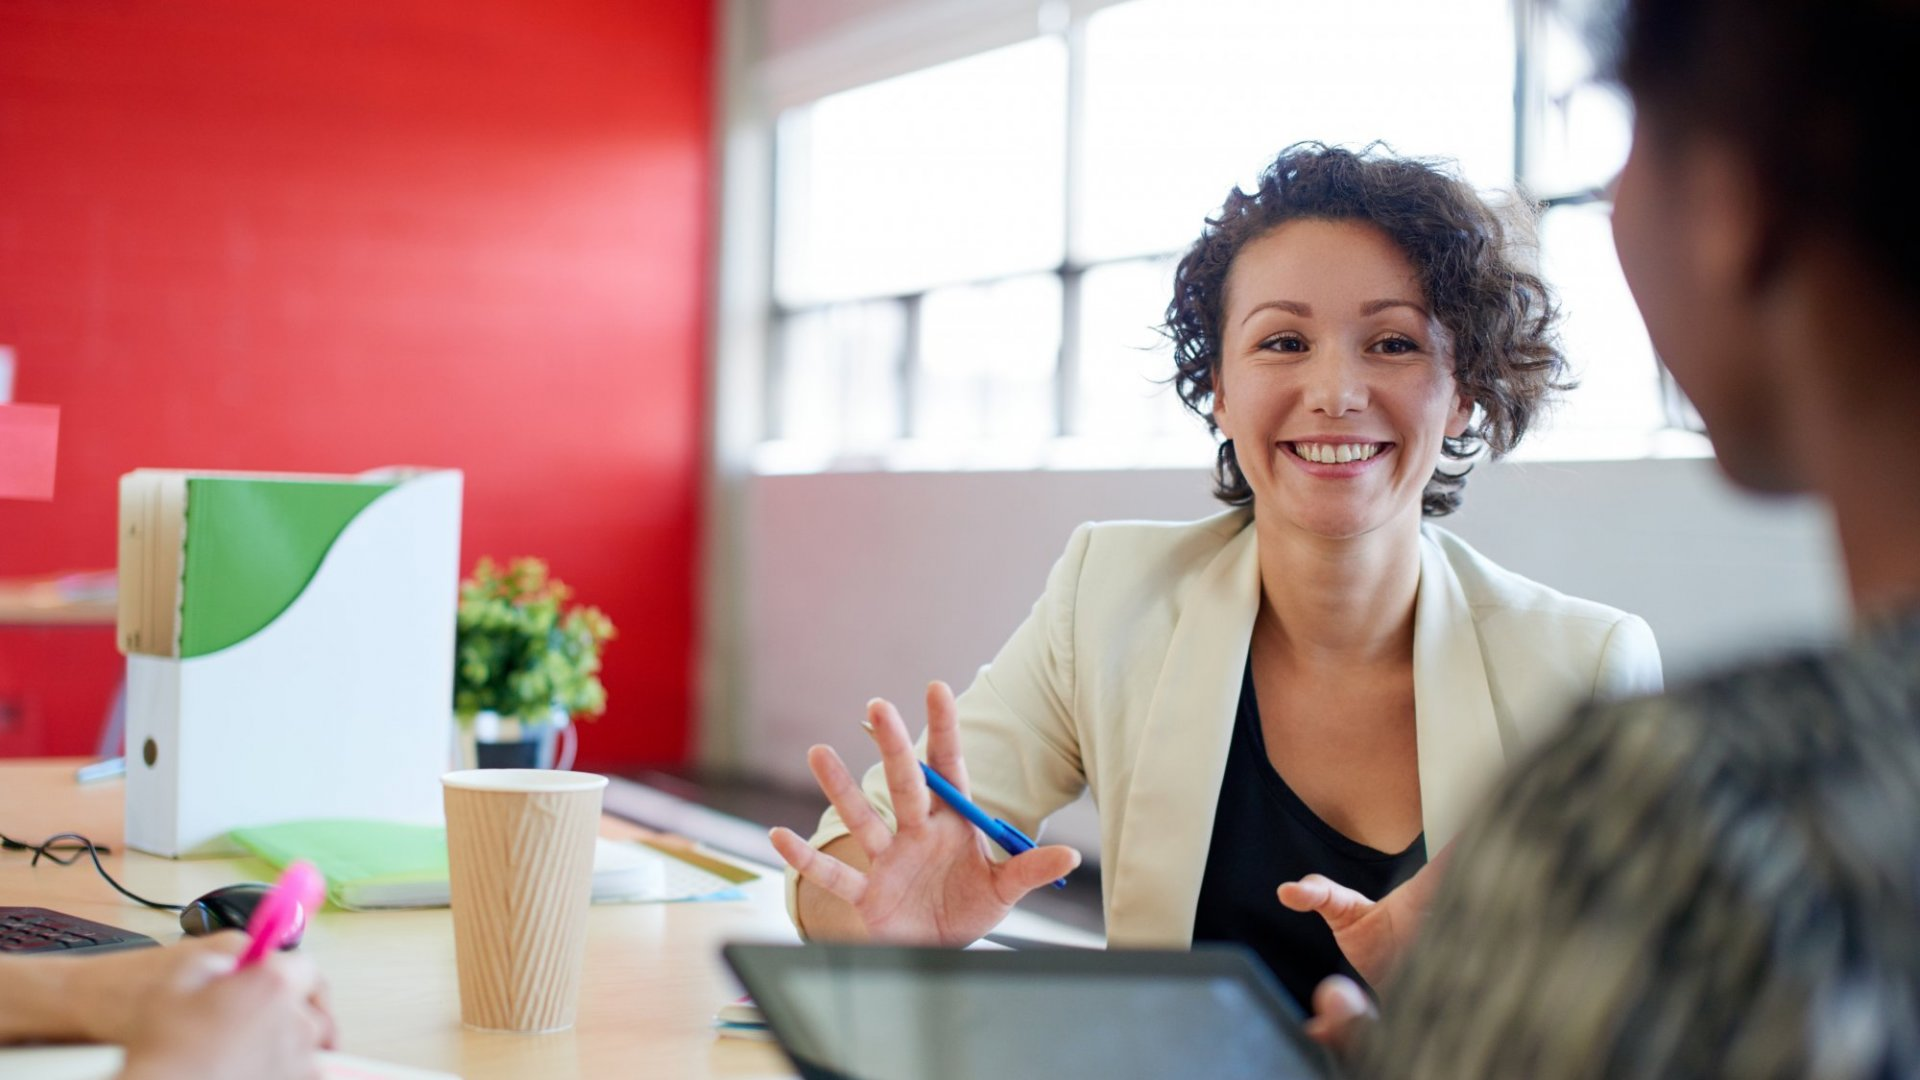 Hiring Great People Is More Than a Gut Feeling. Here Are 8 Ways to Get it Right Every Time